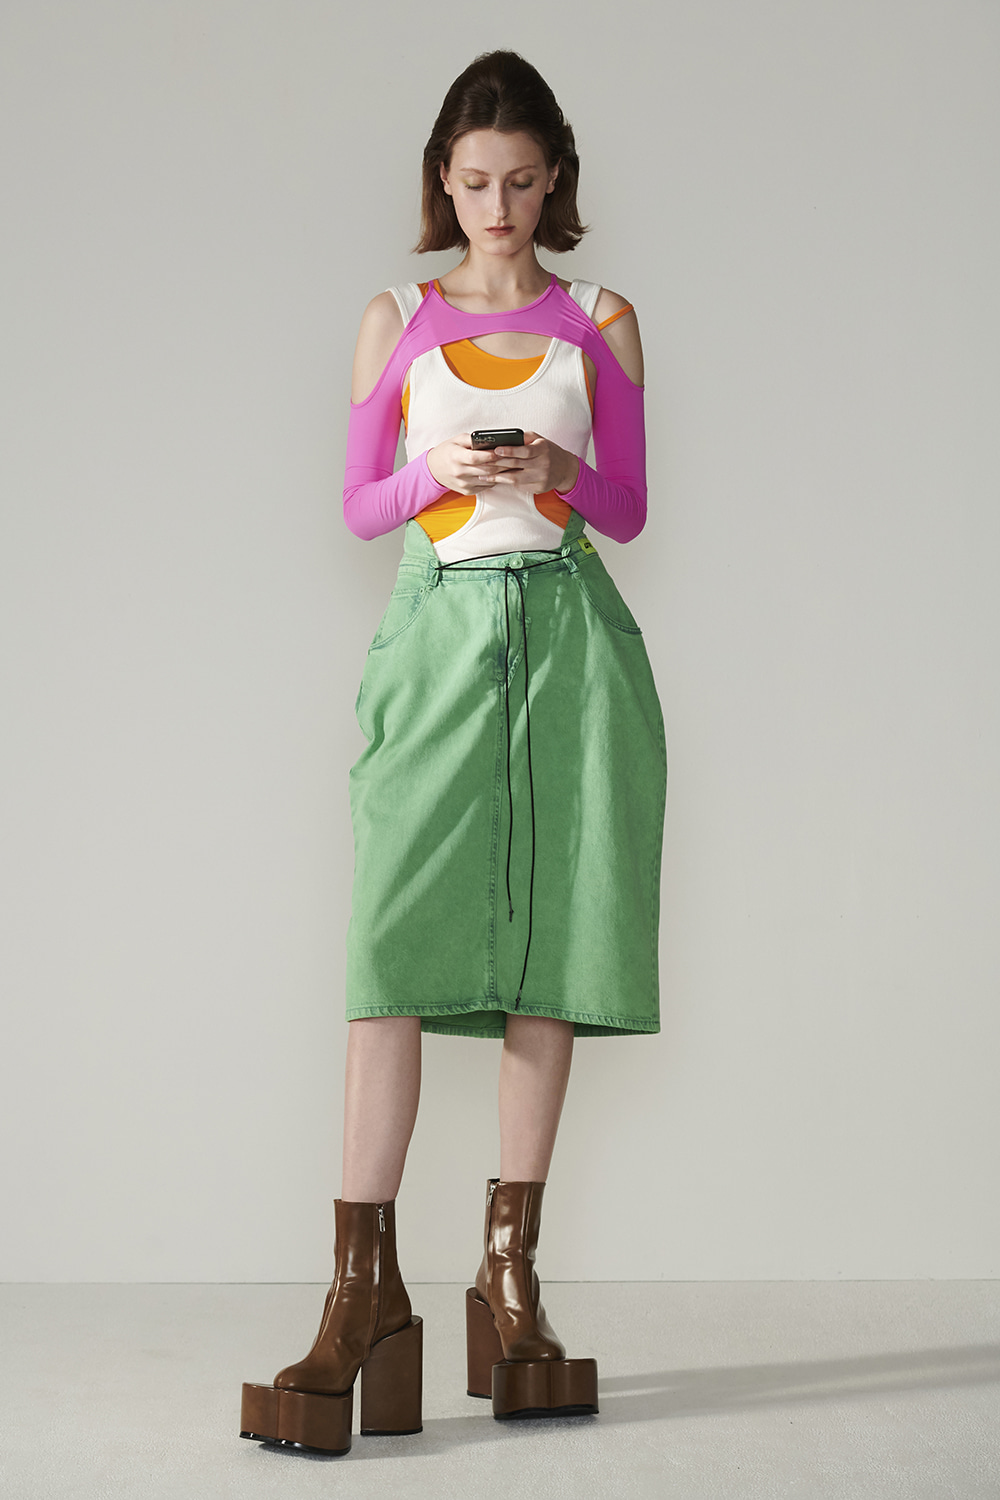 SS21 BACK-UP GREEN SKIRT